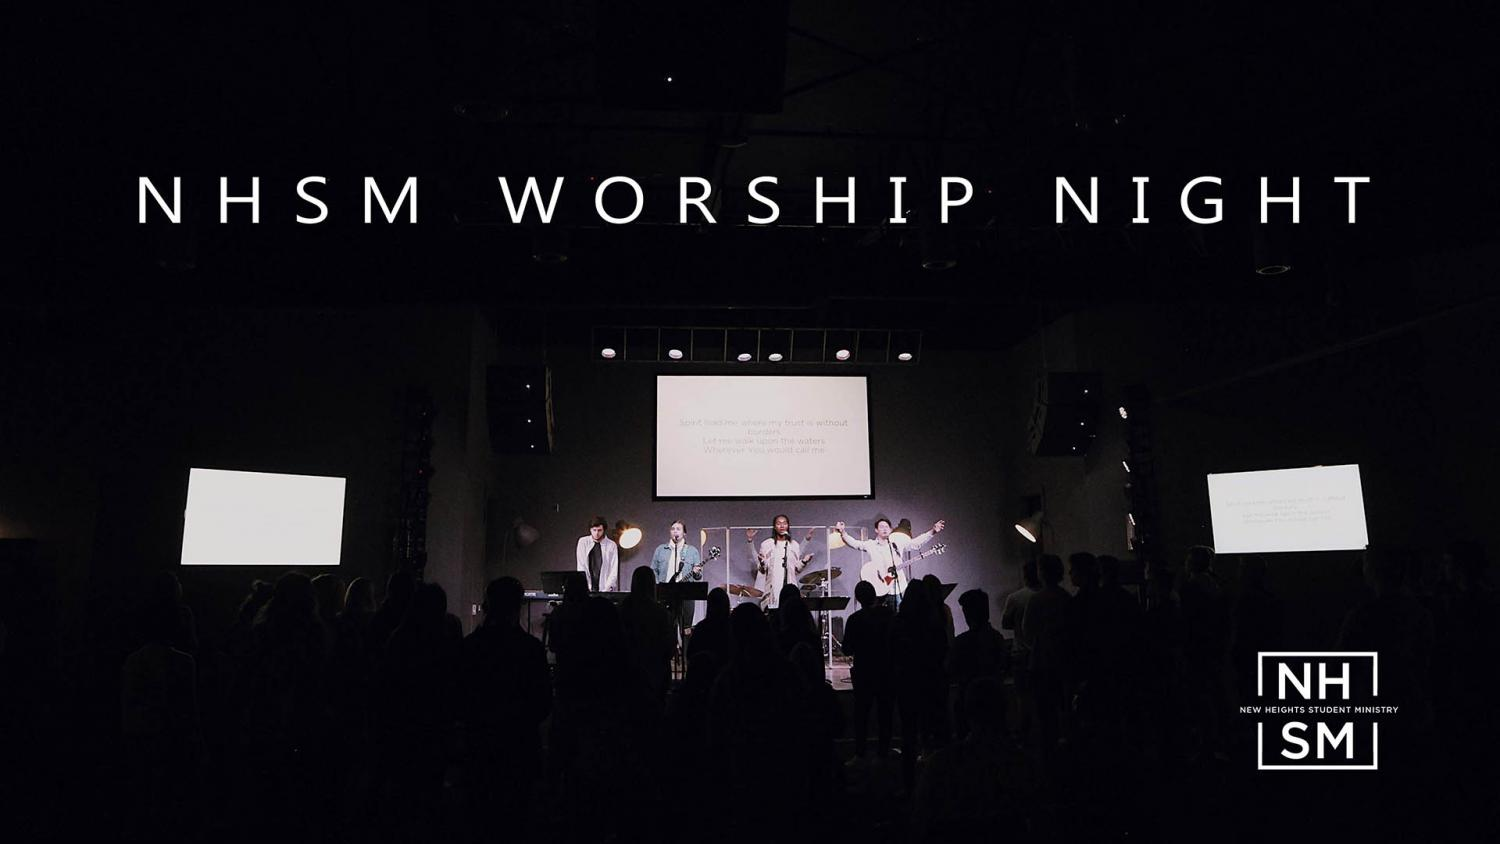 NHSM Worship Night